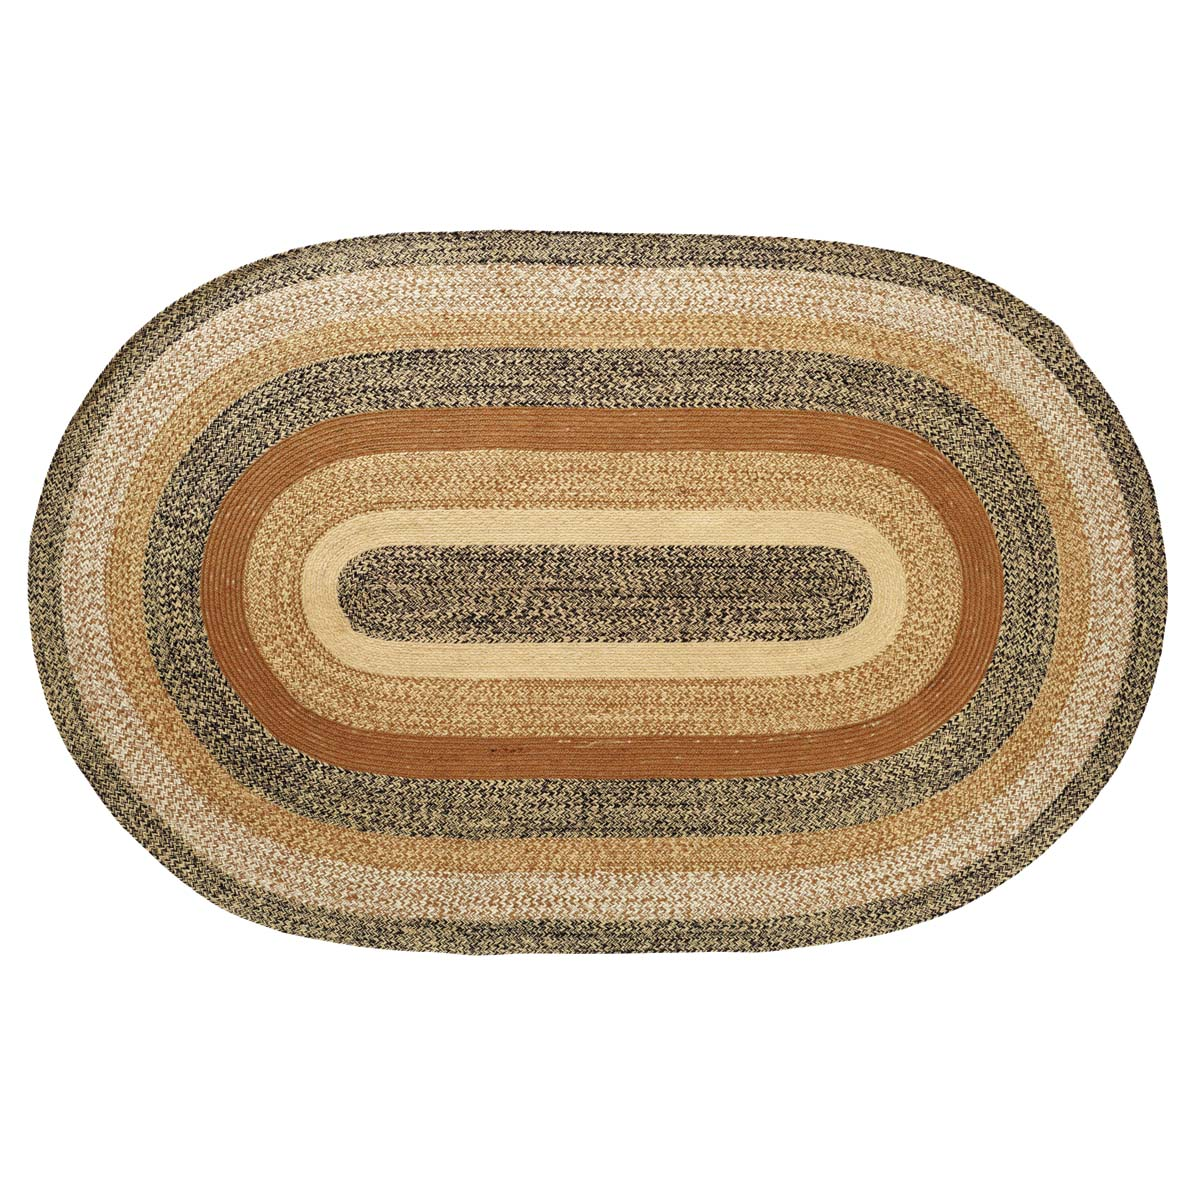 Kettle Grove Jute Rug Oval 60x96